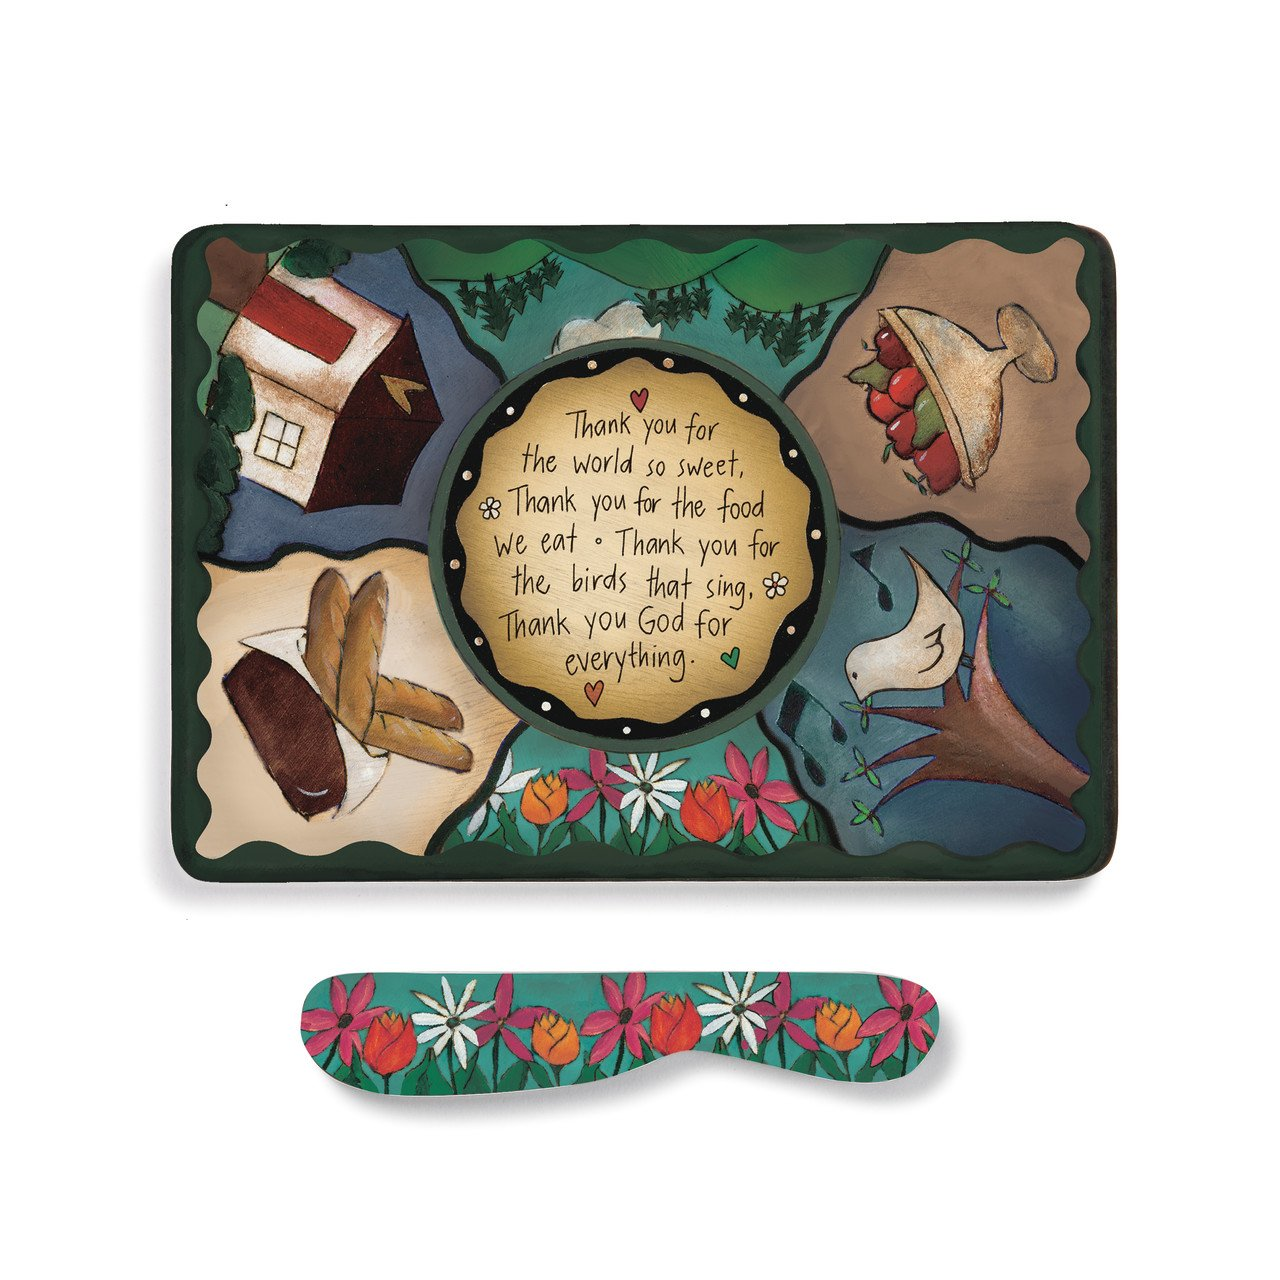 Table Prayer Multicolored 9 x 7 Melamine Cheese Plate With Spreader Set Demdaco 1004040032